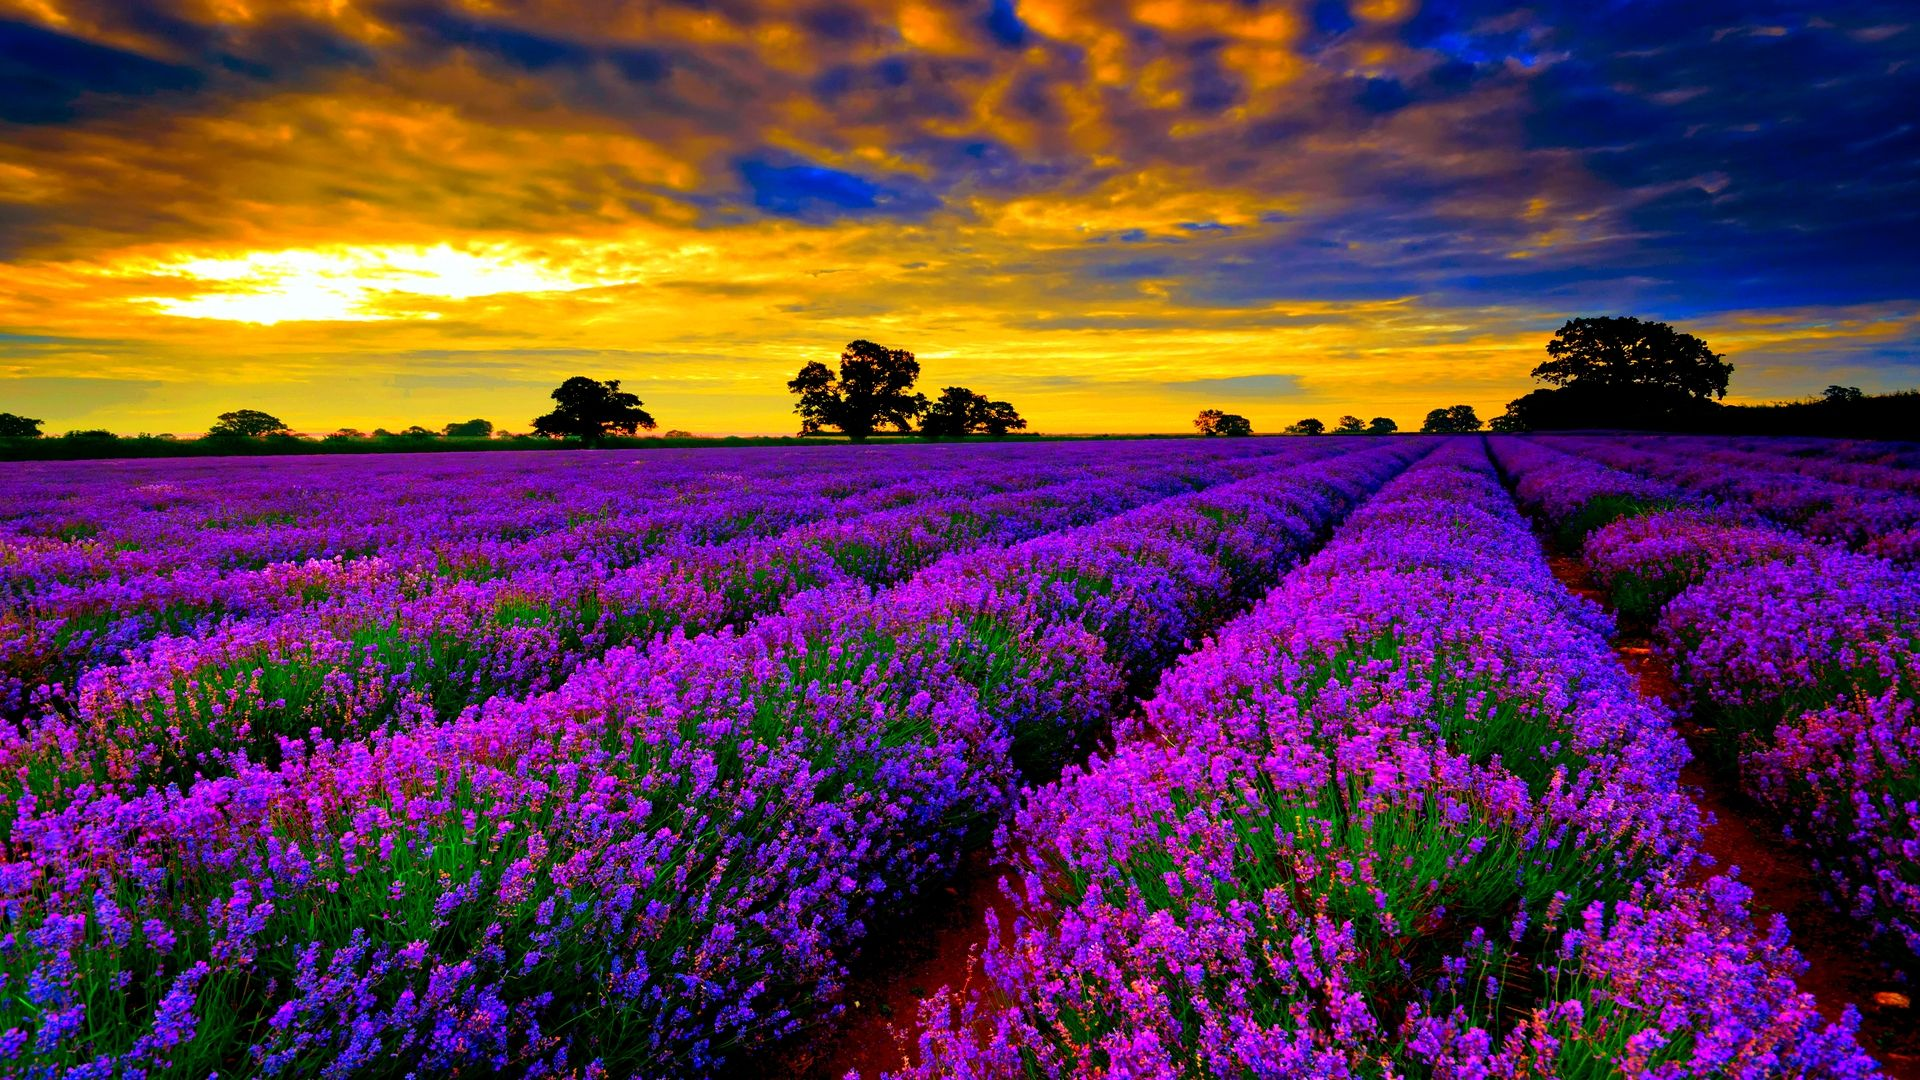 most-beautiful-field-of-lavender-flowers-widescreen | wallpaper.wiki